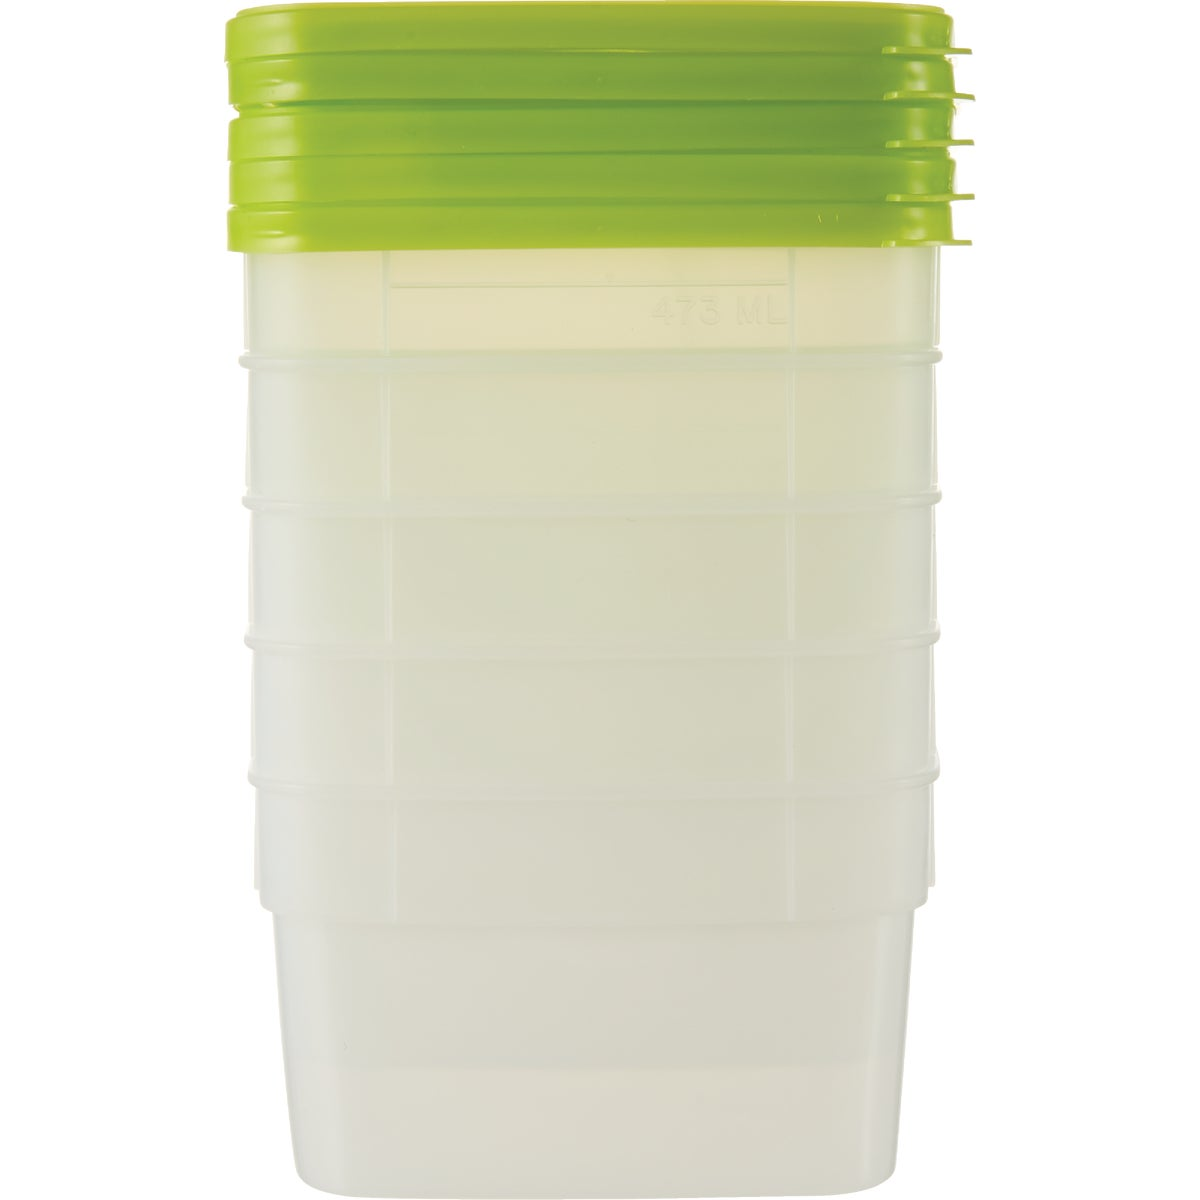 PINT STORAGE CONTAINER